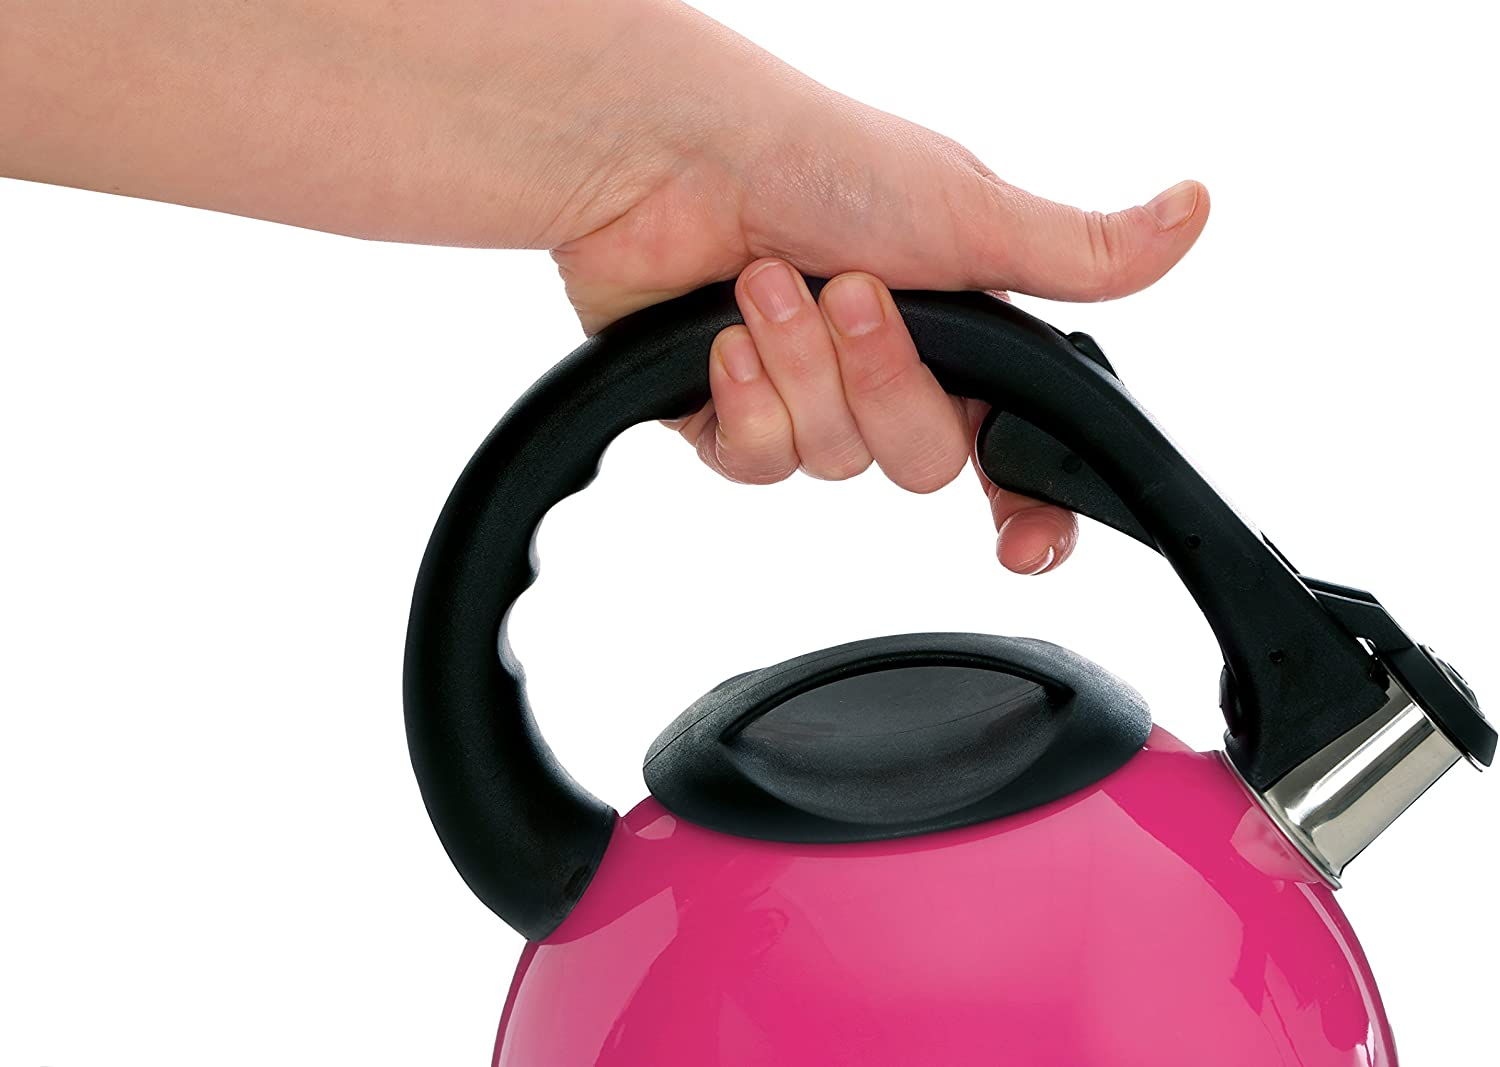 Premier Housewares Hot Pink Stainless Steel Whistling Kettle